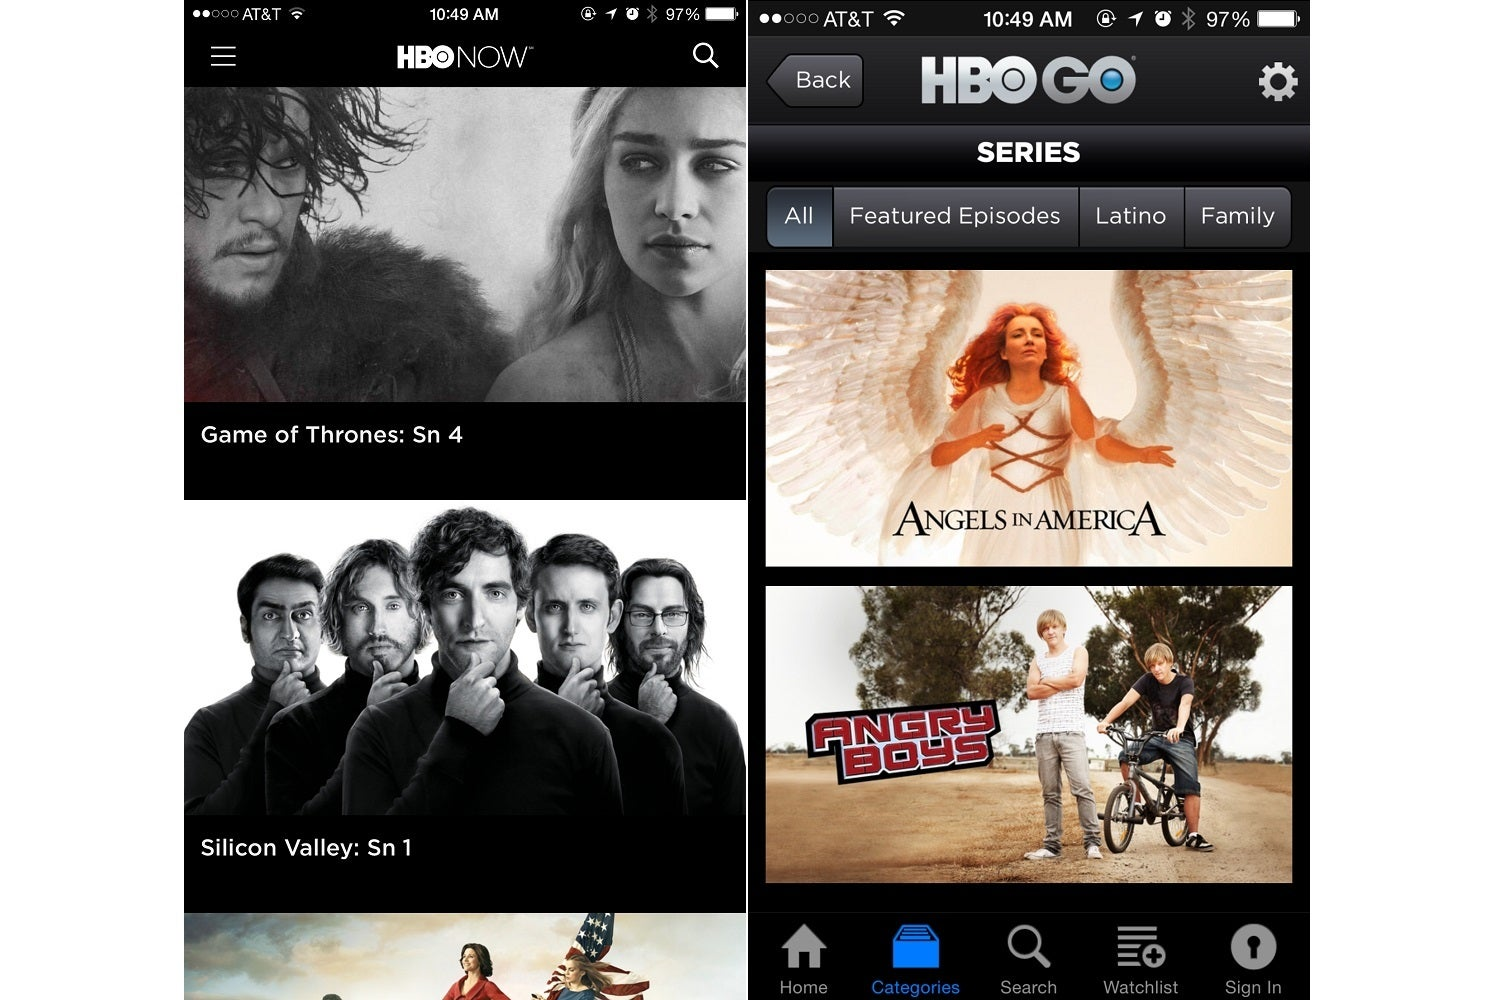 When is the Games of Thrones Season 6 release date and time on HBO Now and HBO Go?